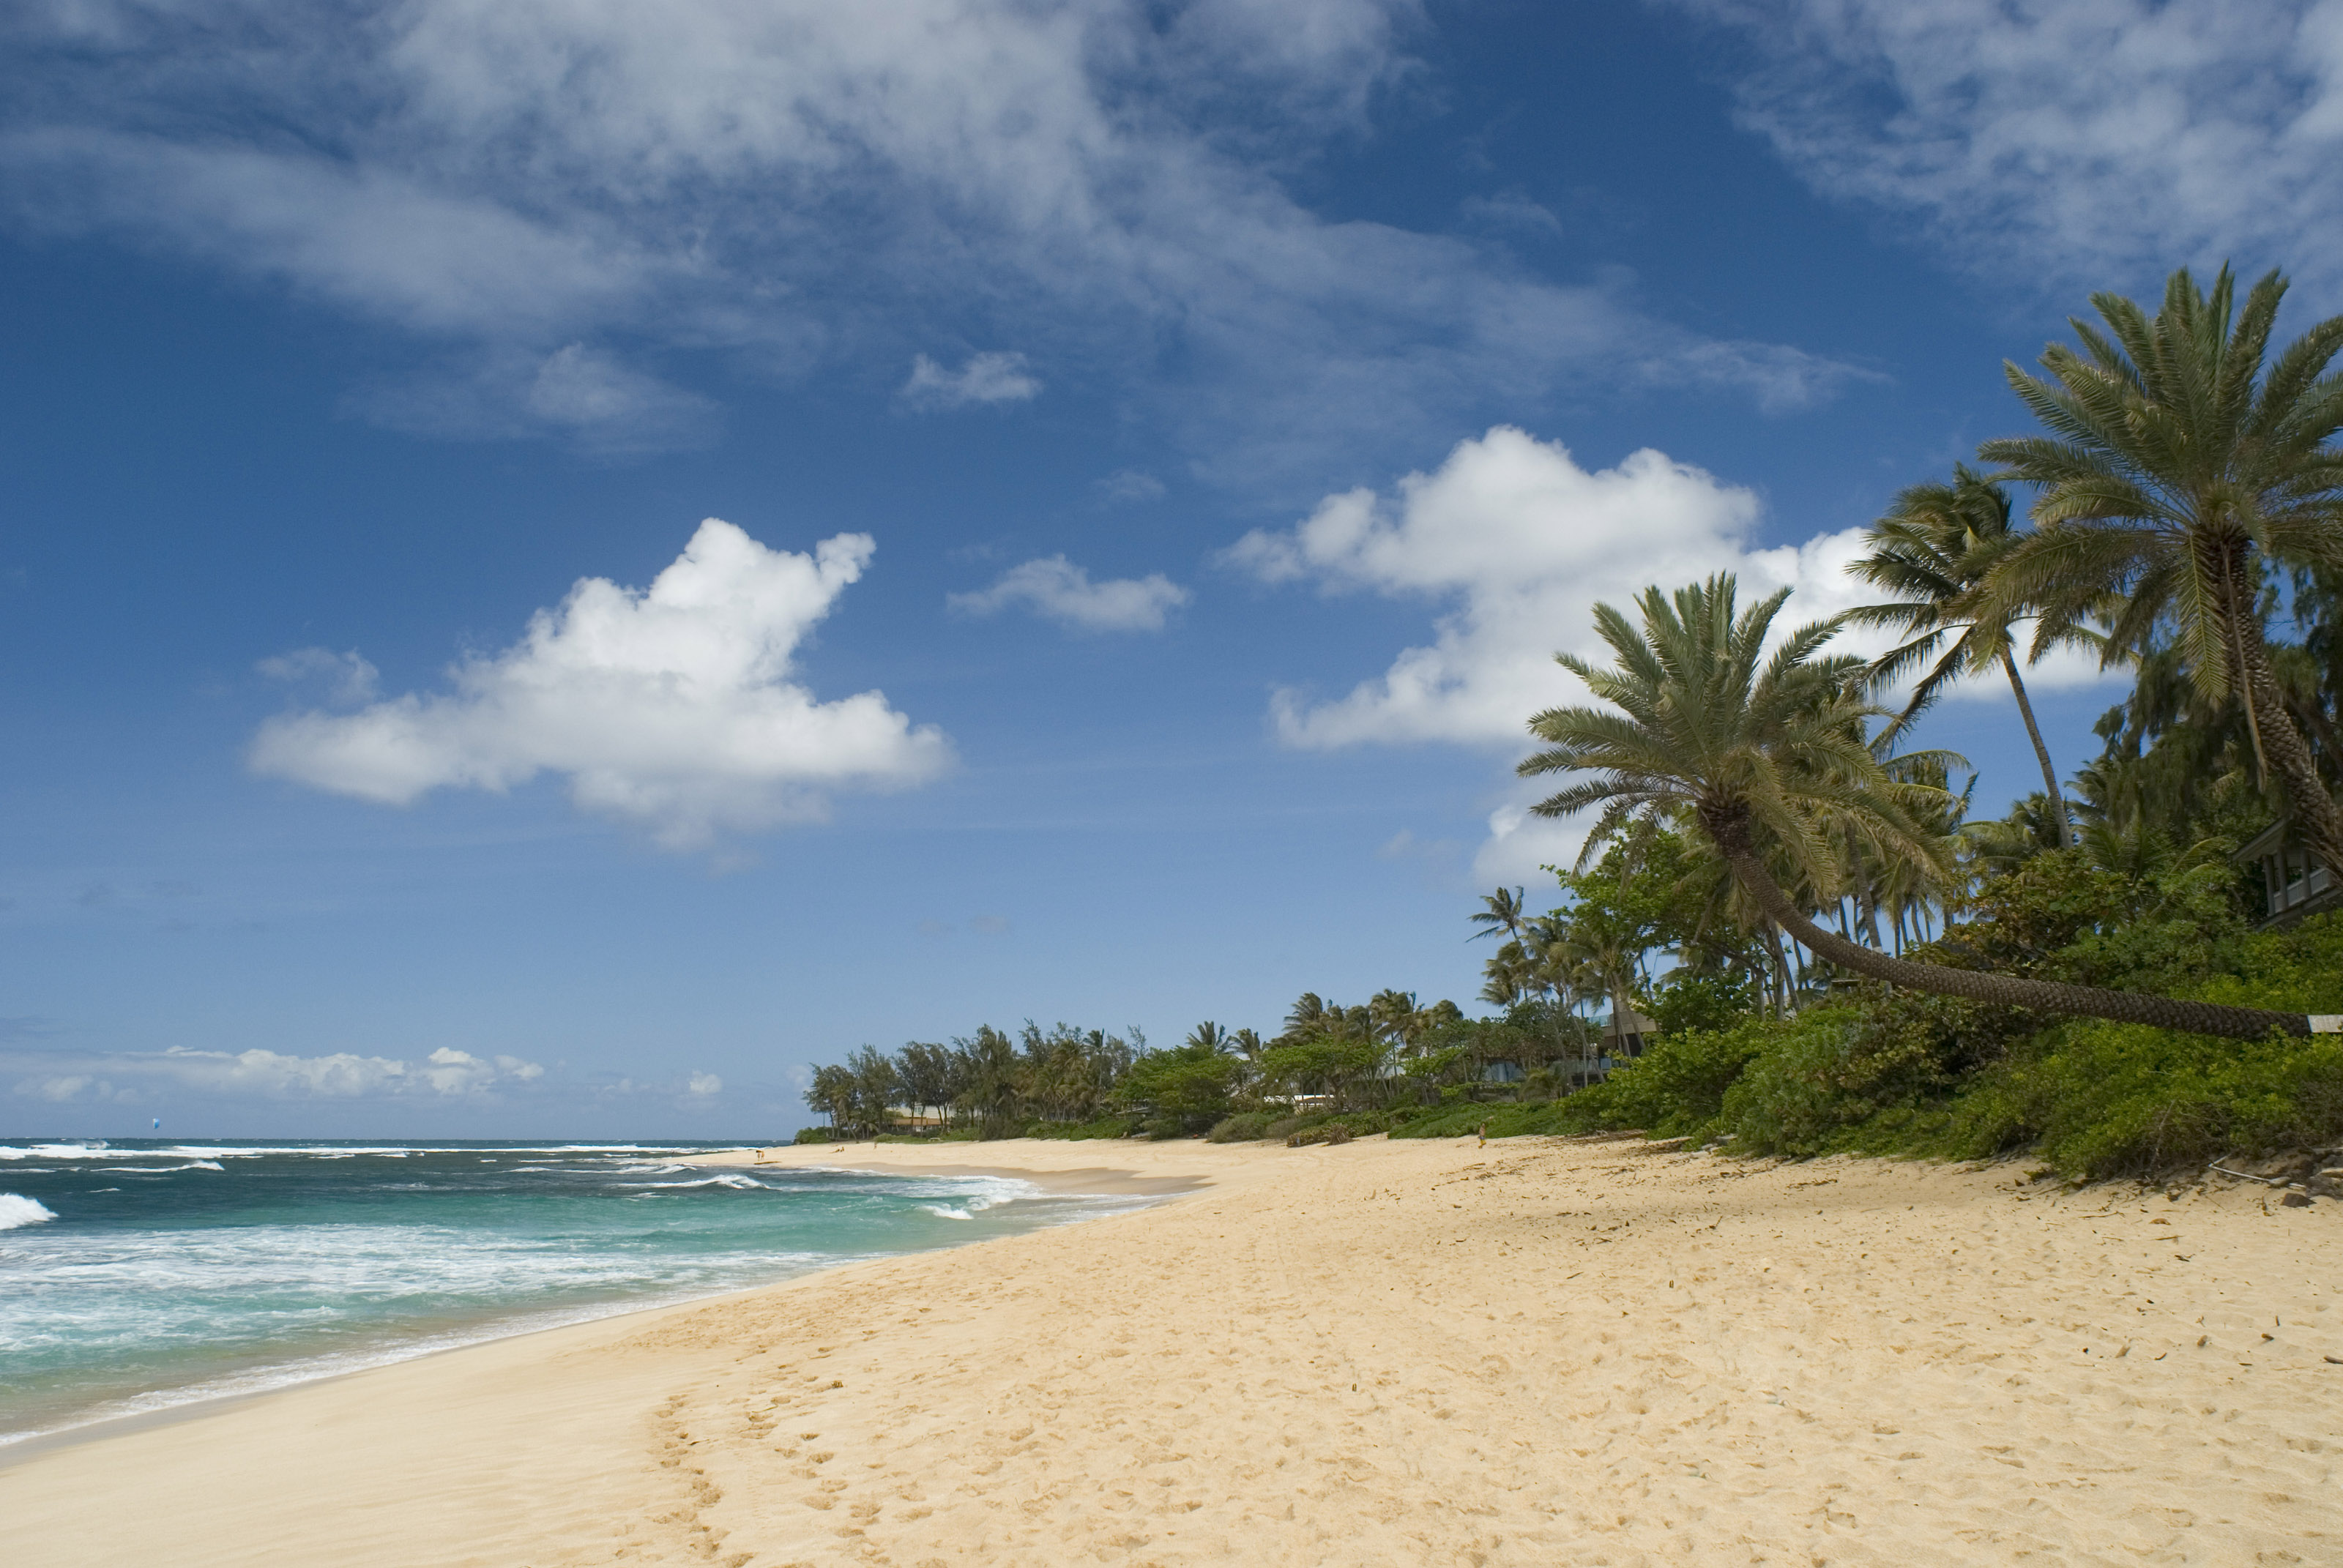 Sunset Beach Hawaii 4578 Stockarch Free Stock Photos